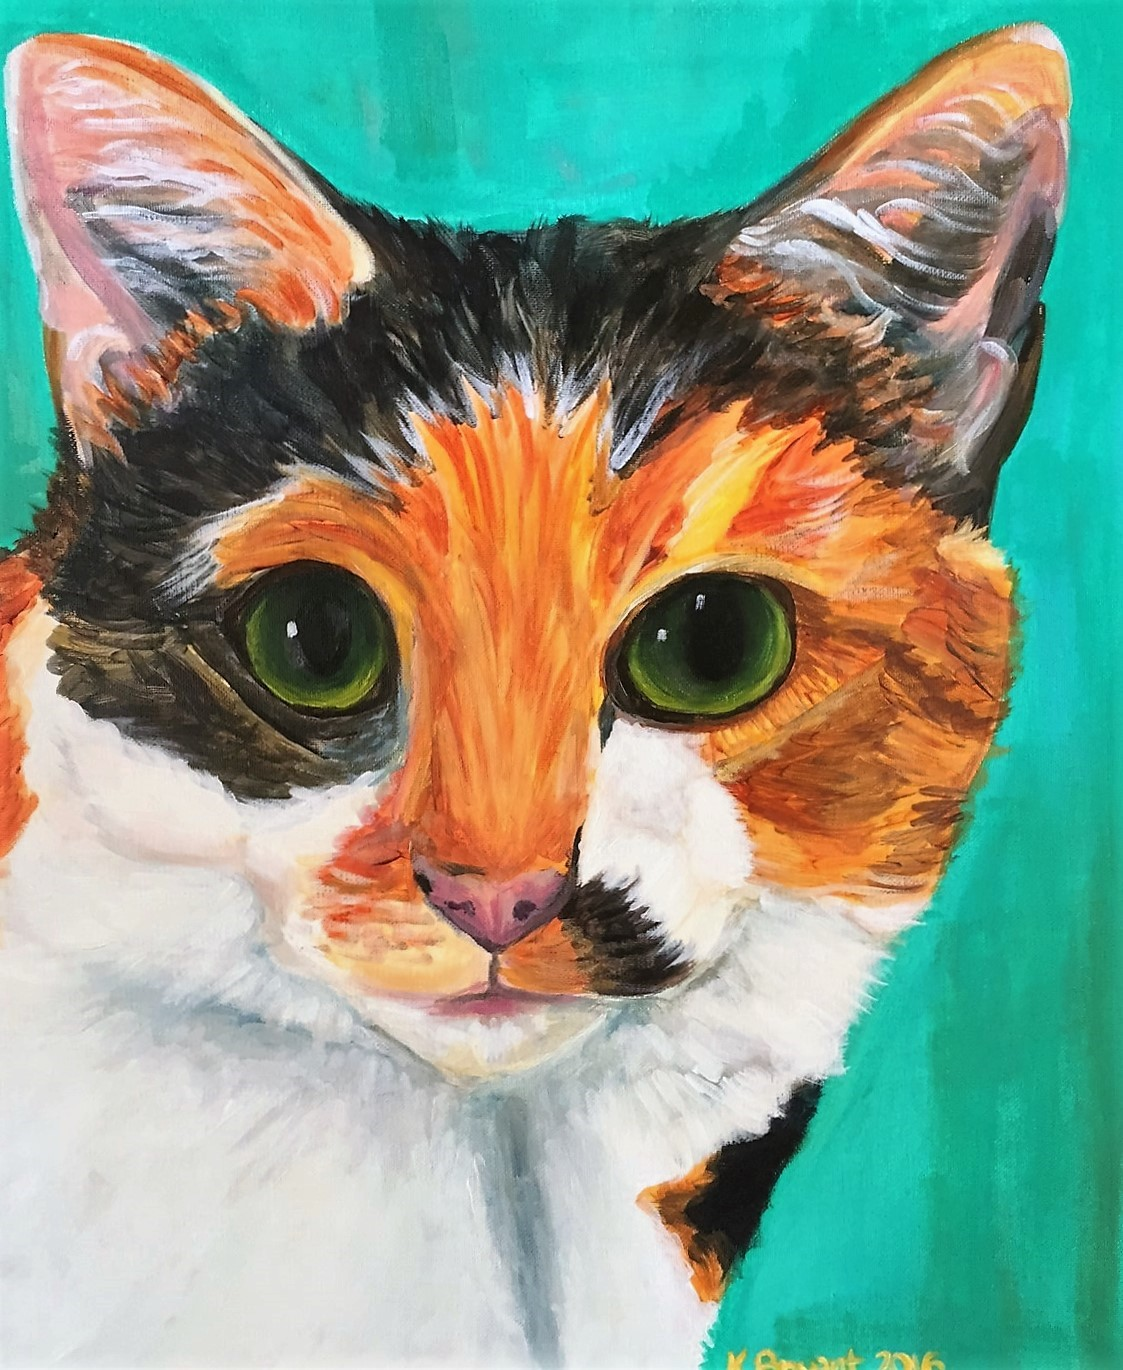 Mystery calico cat